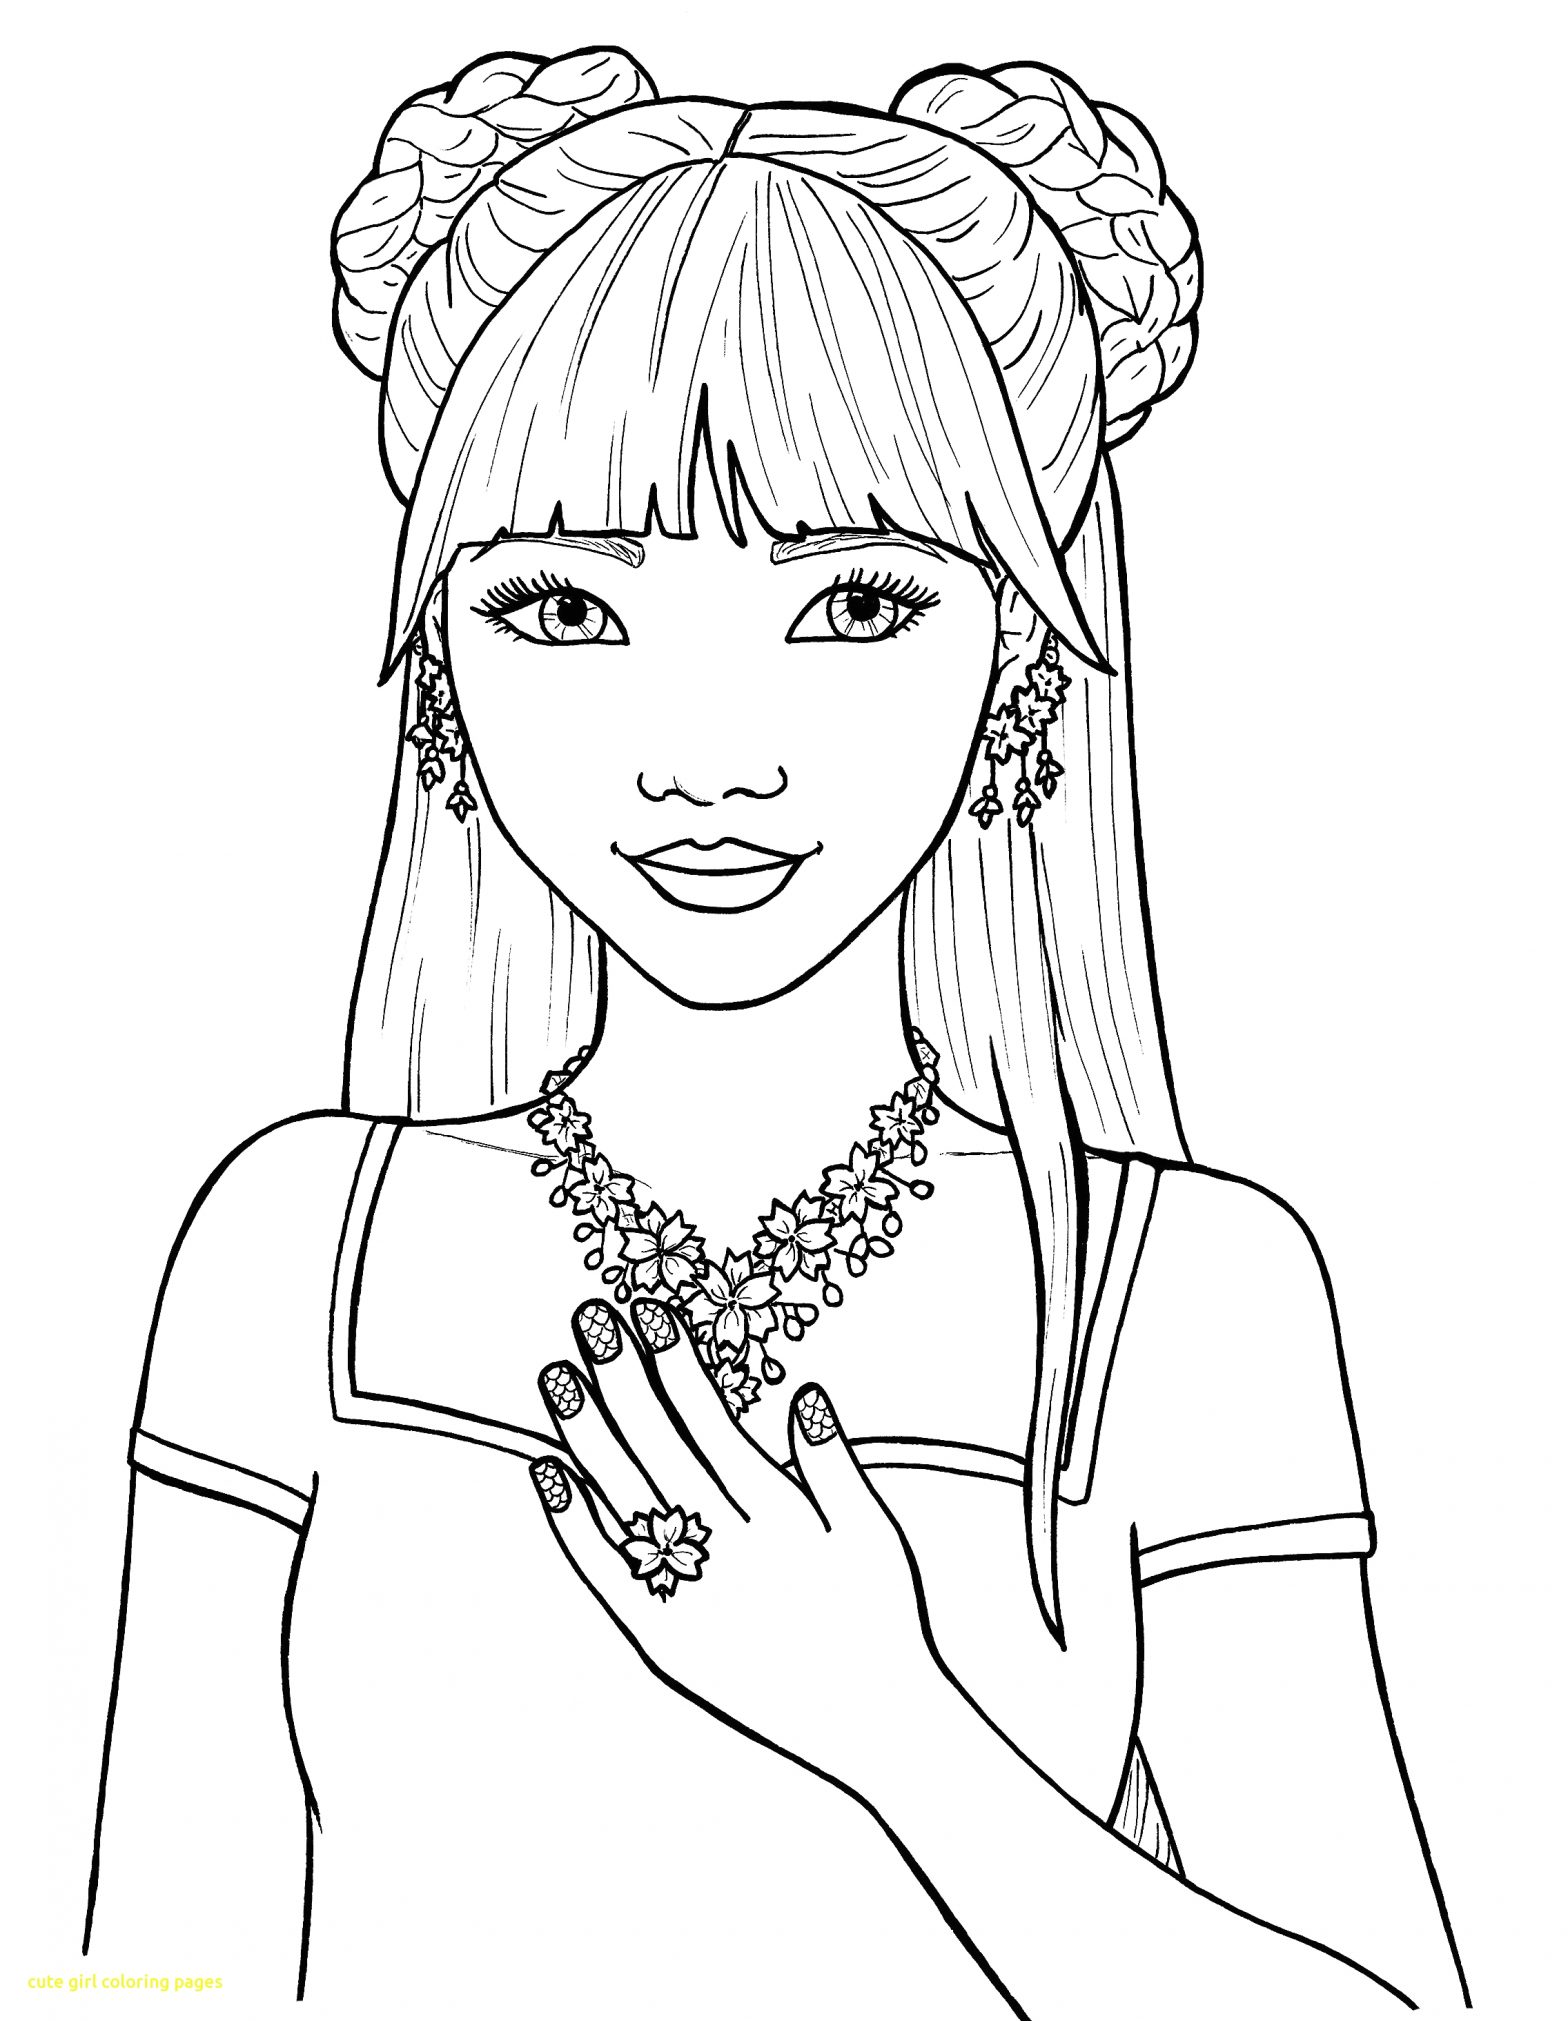 Coloring Pages for Girls 8 and Up Coloring Pages for Girls Best Coloring Pages for Kids